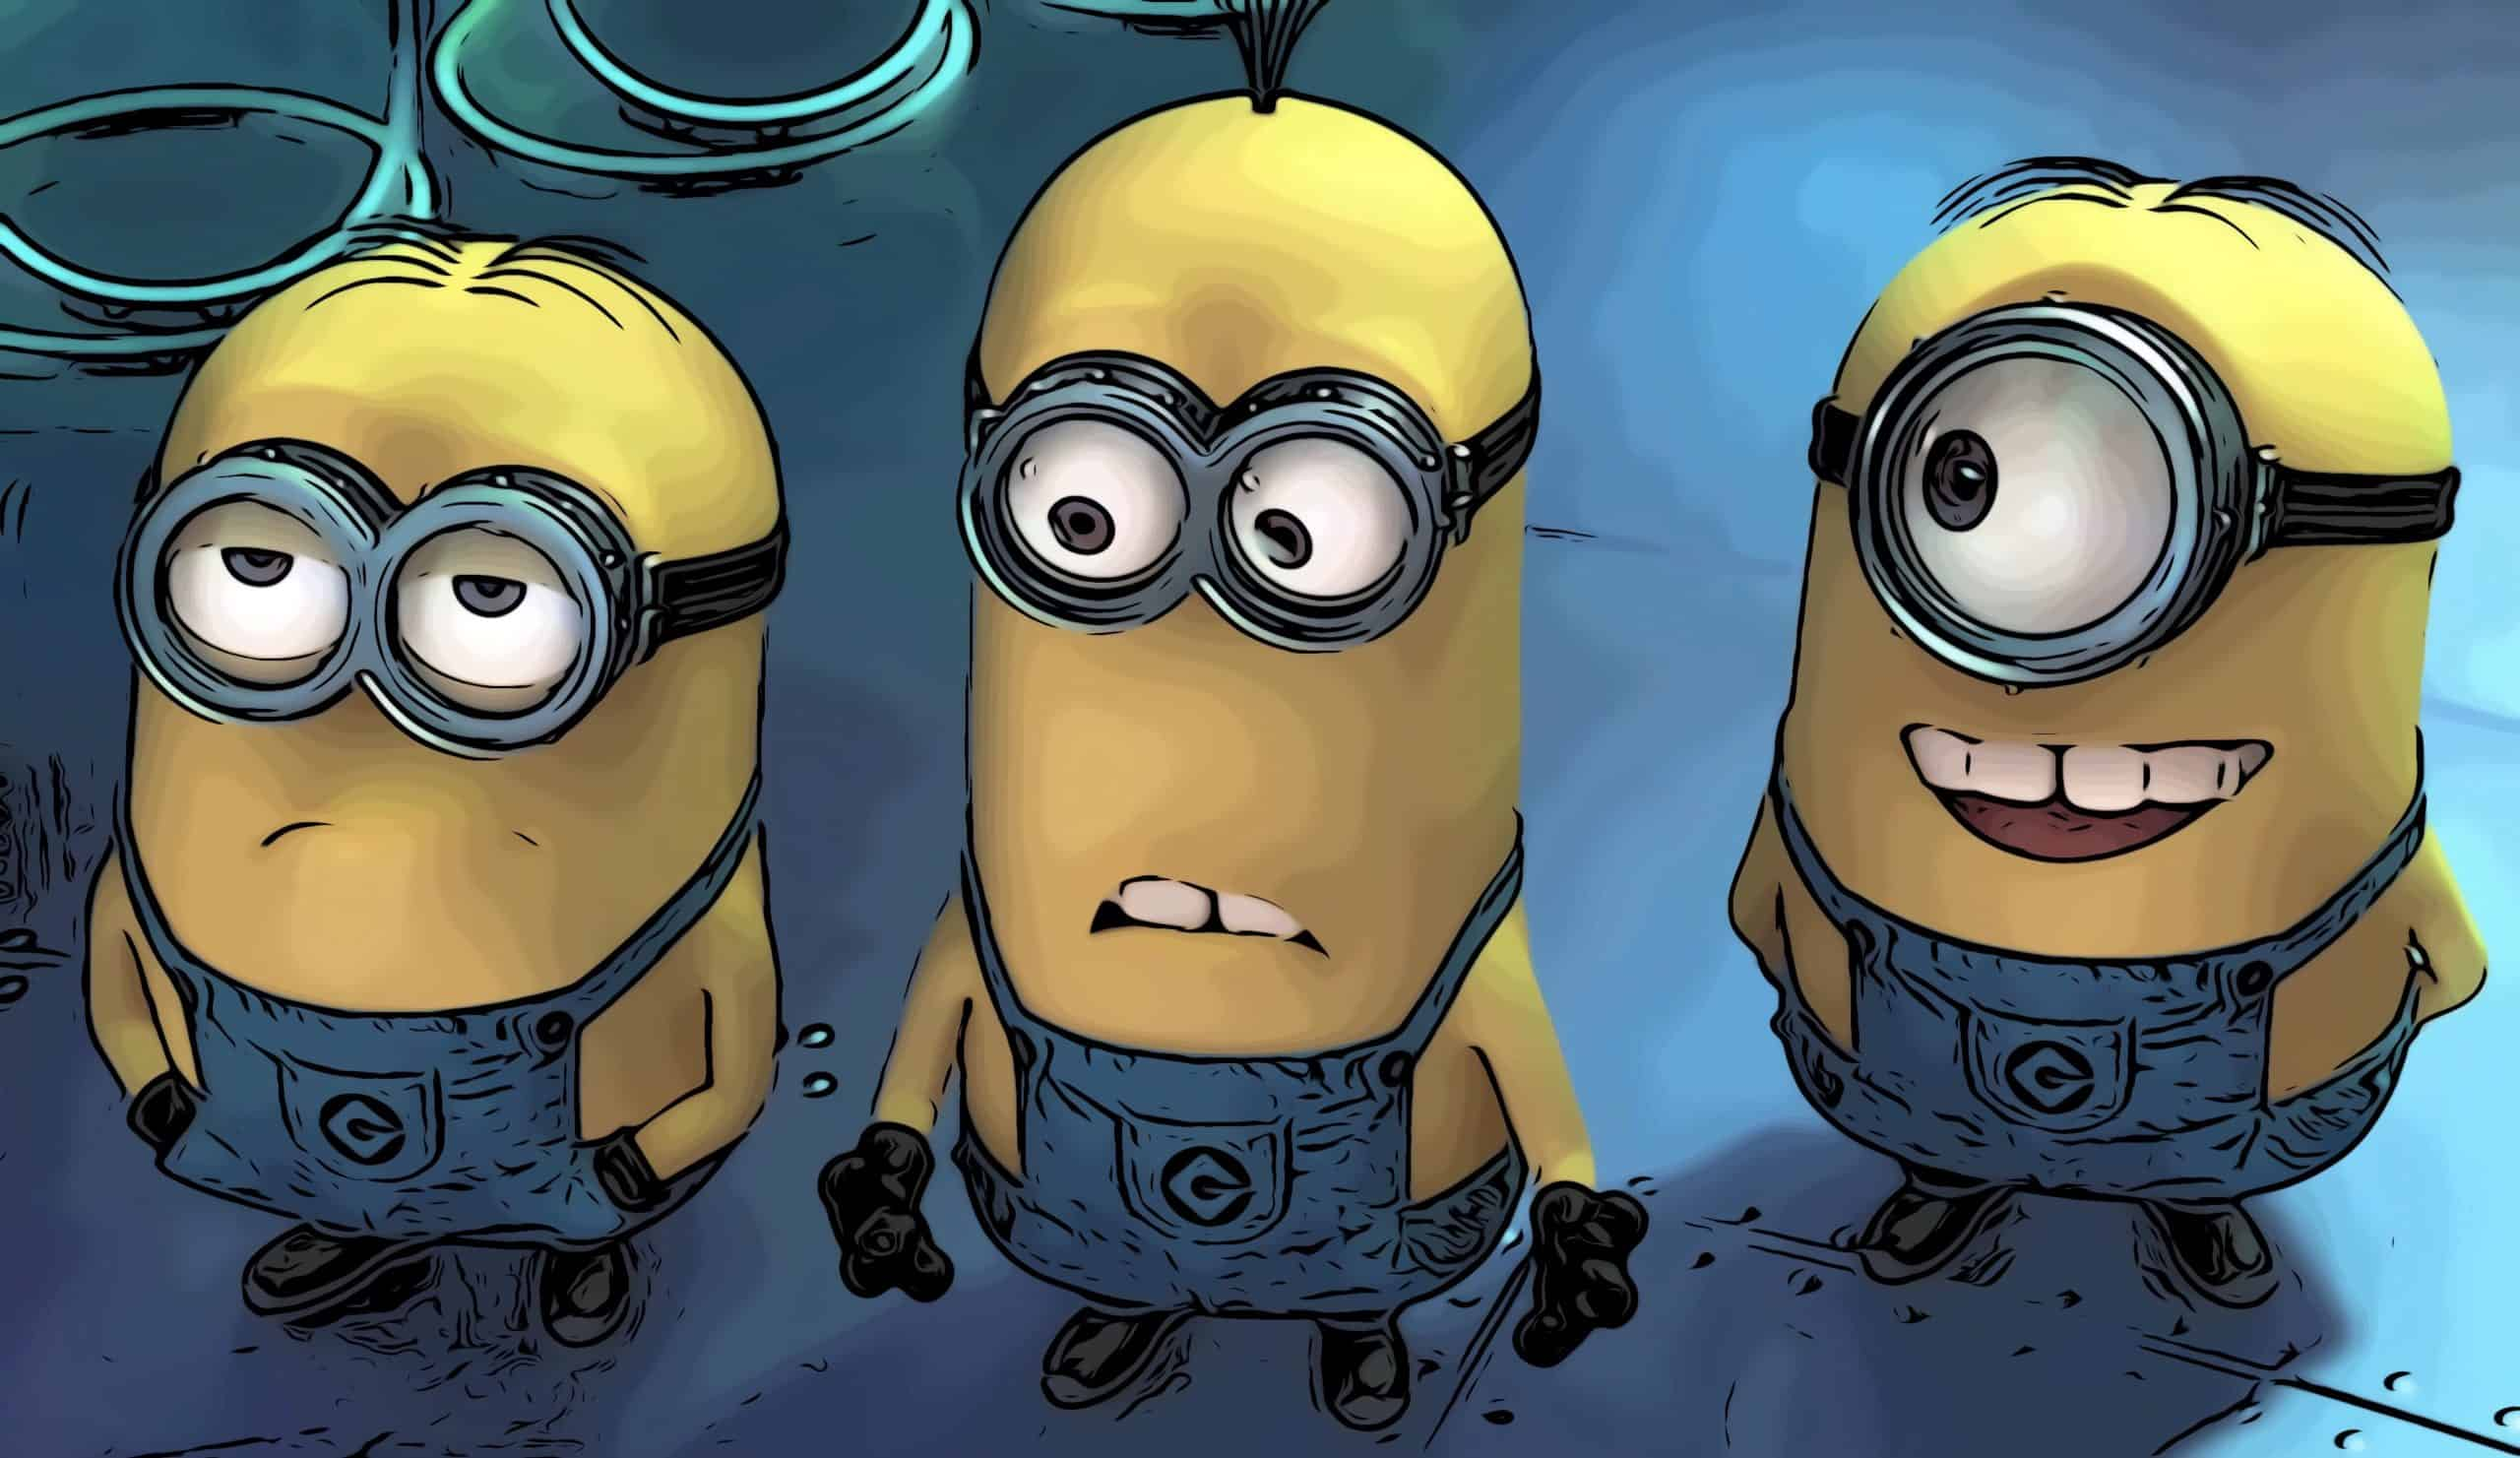 Scene from Despicable Me for funny pg 13 movies post.